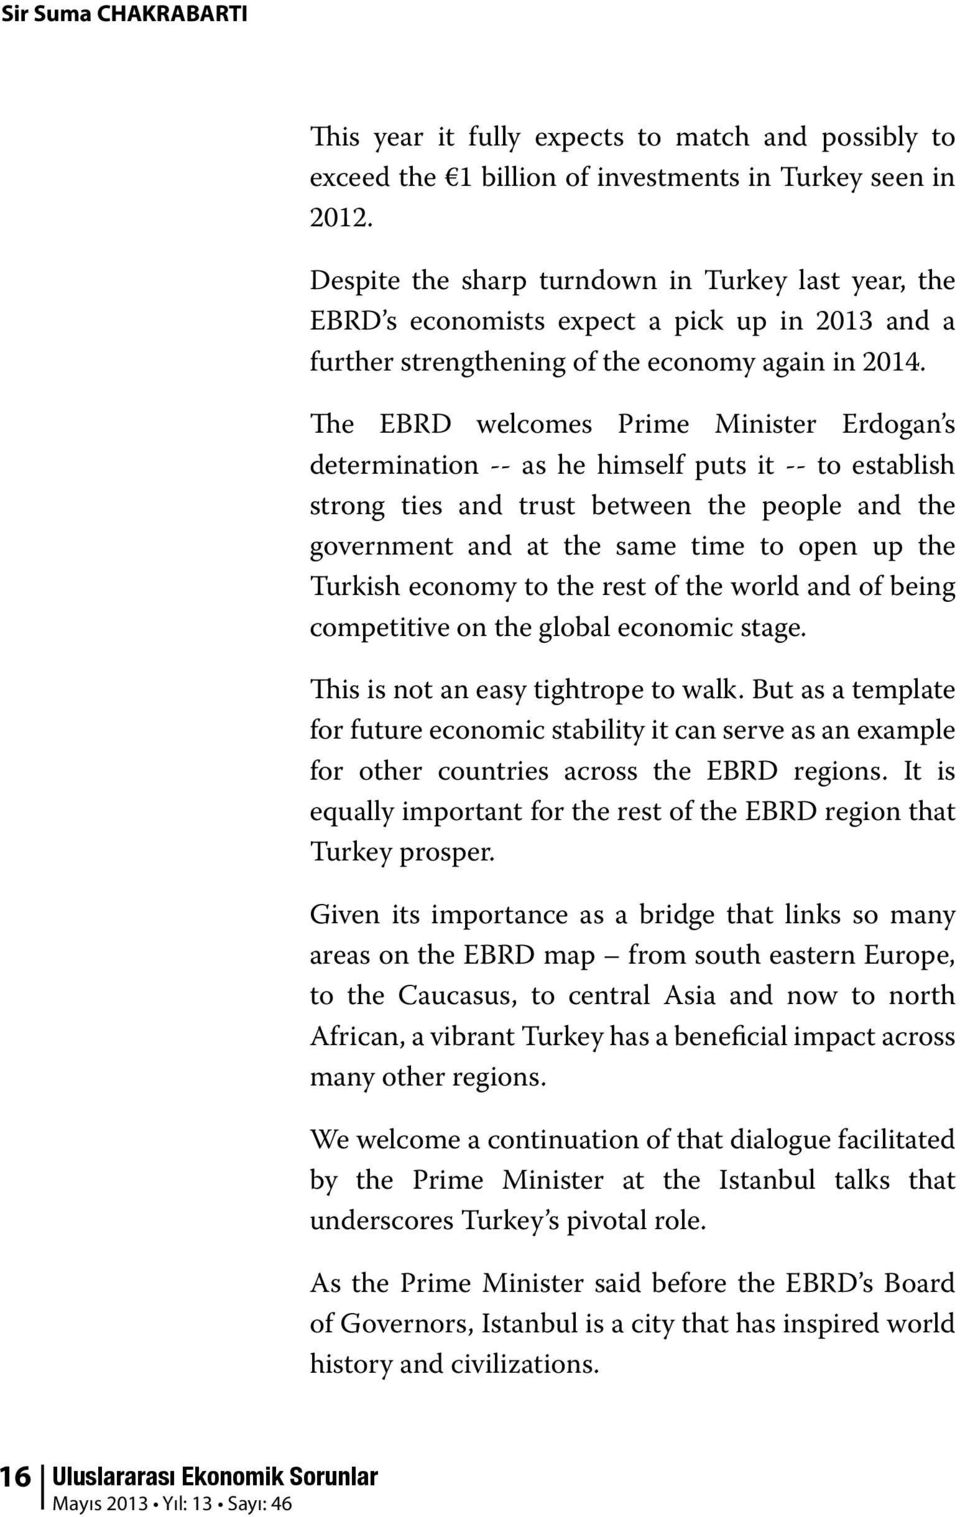 The EBRD welcomes Prime Minister Erdogan s determination -- as he himself puts it -- to establish strong ties and trust between the people and the government and at the same time to open up the